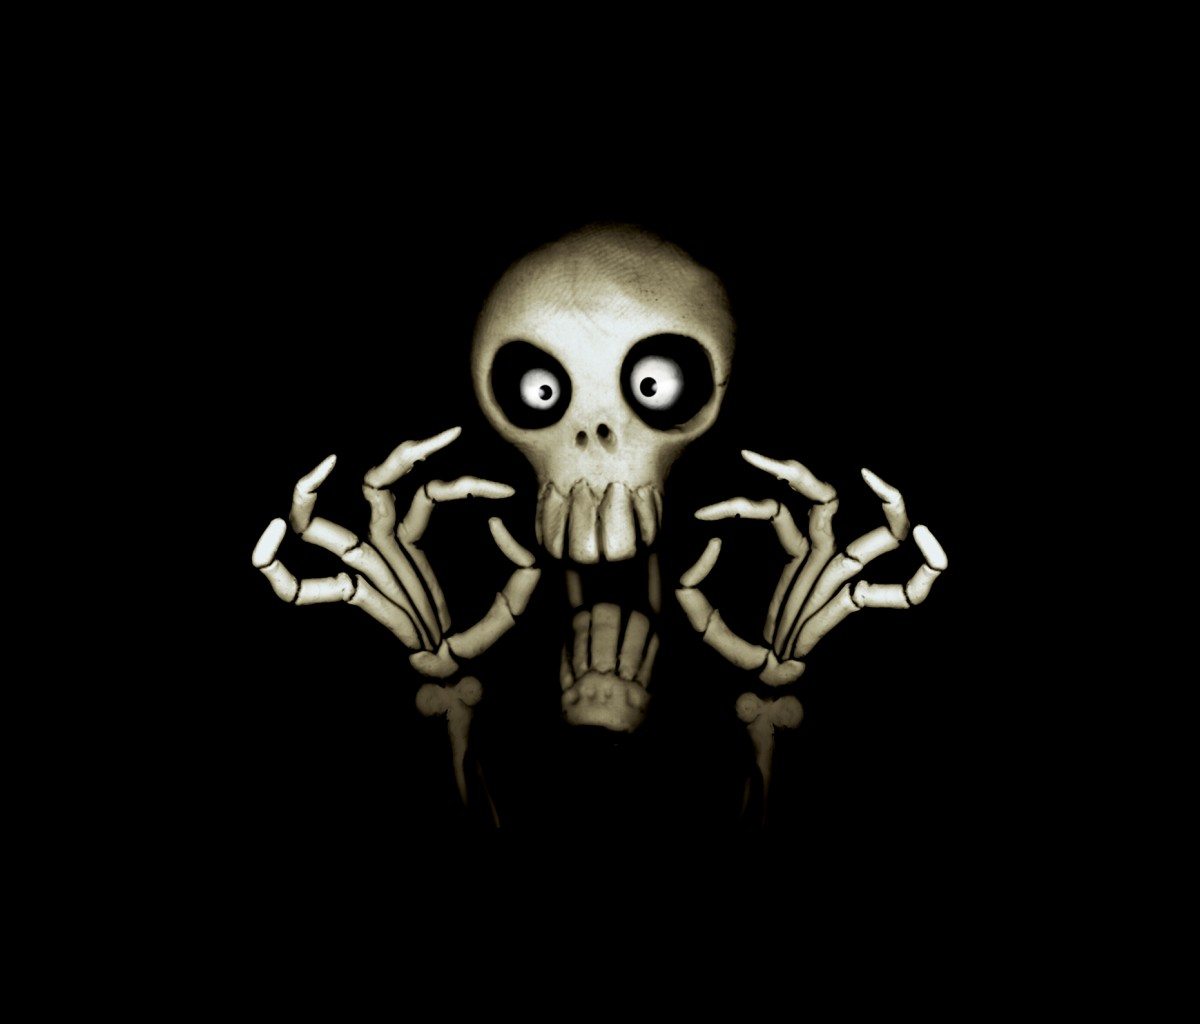 skull wallpaper for windows 7 - photo #41